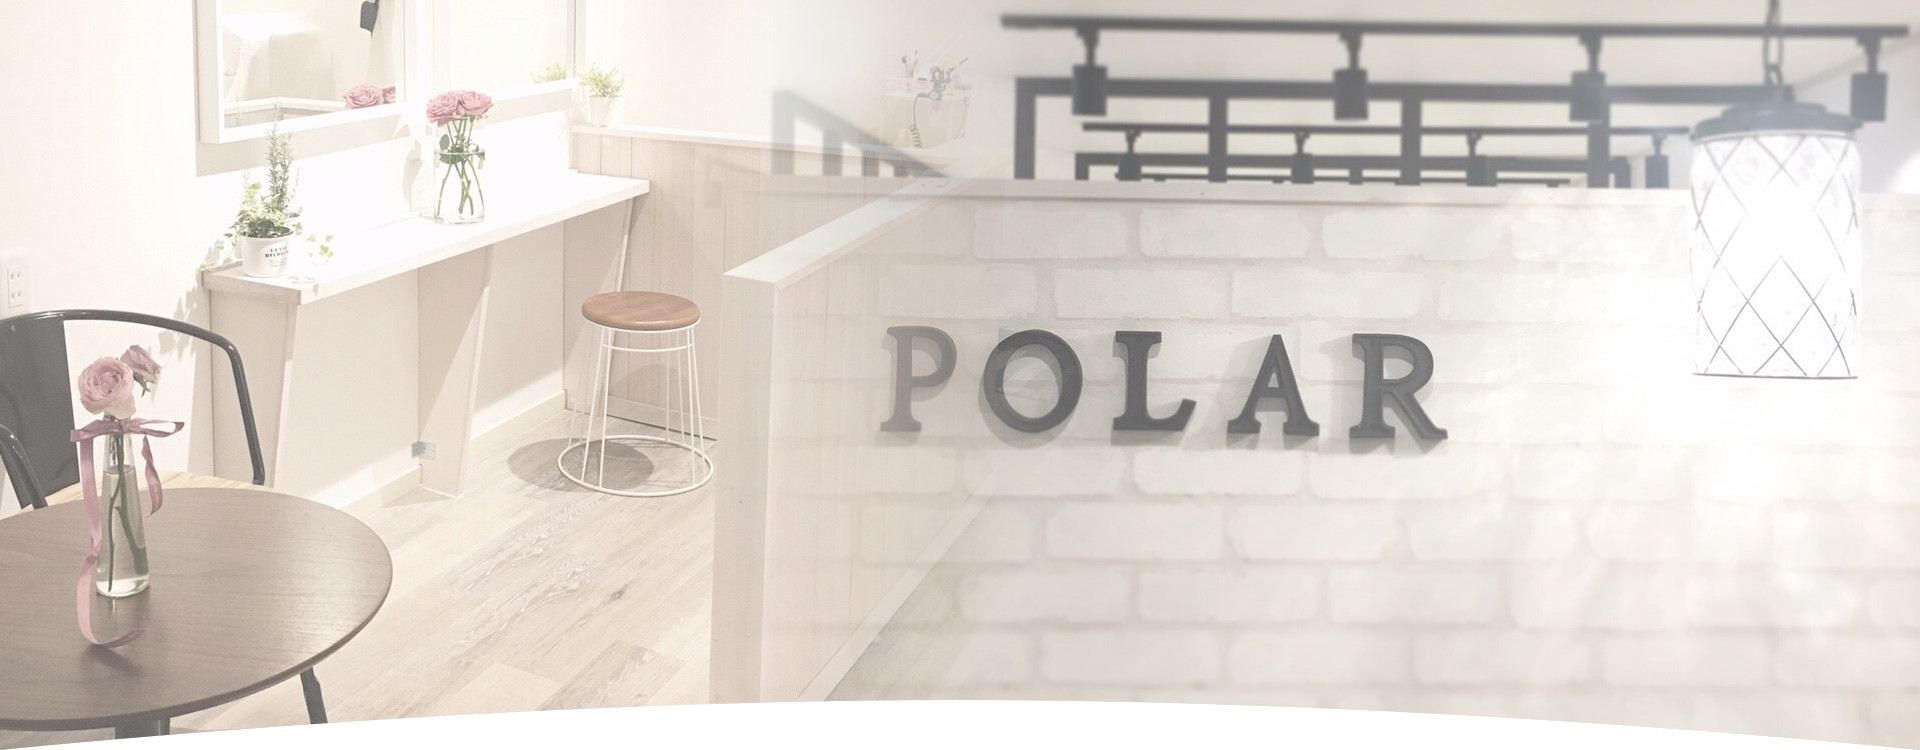 Polar eyelash salon メインイメージ02